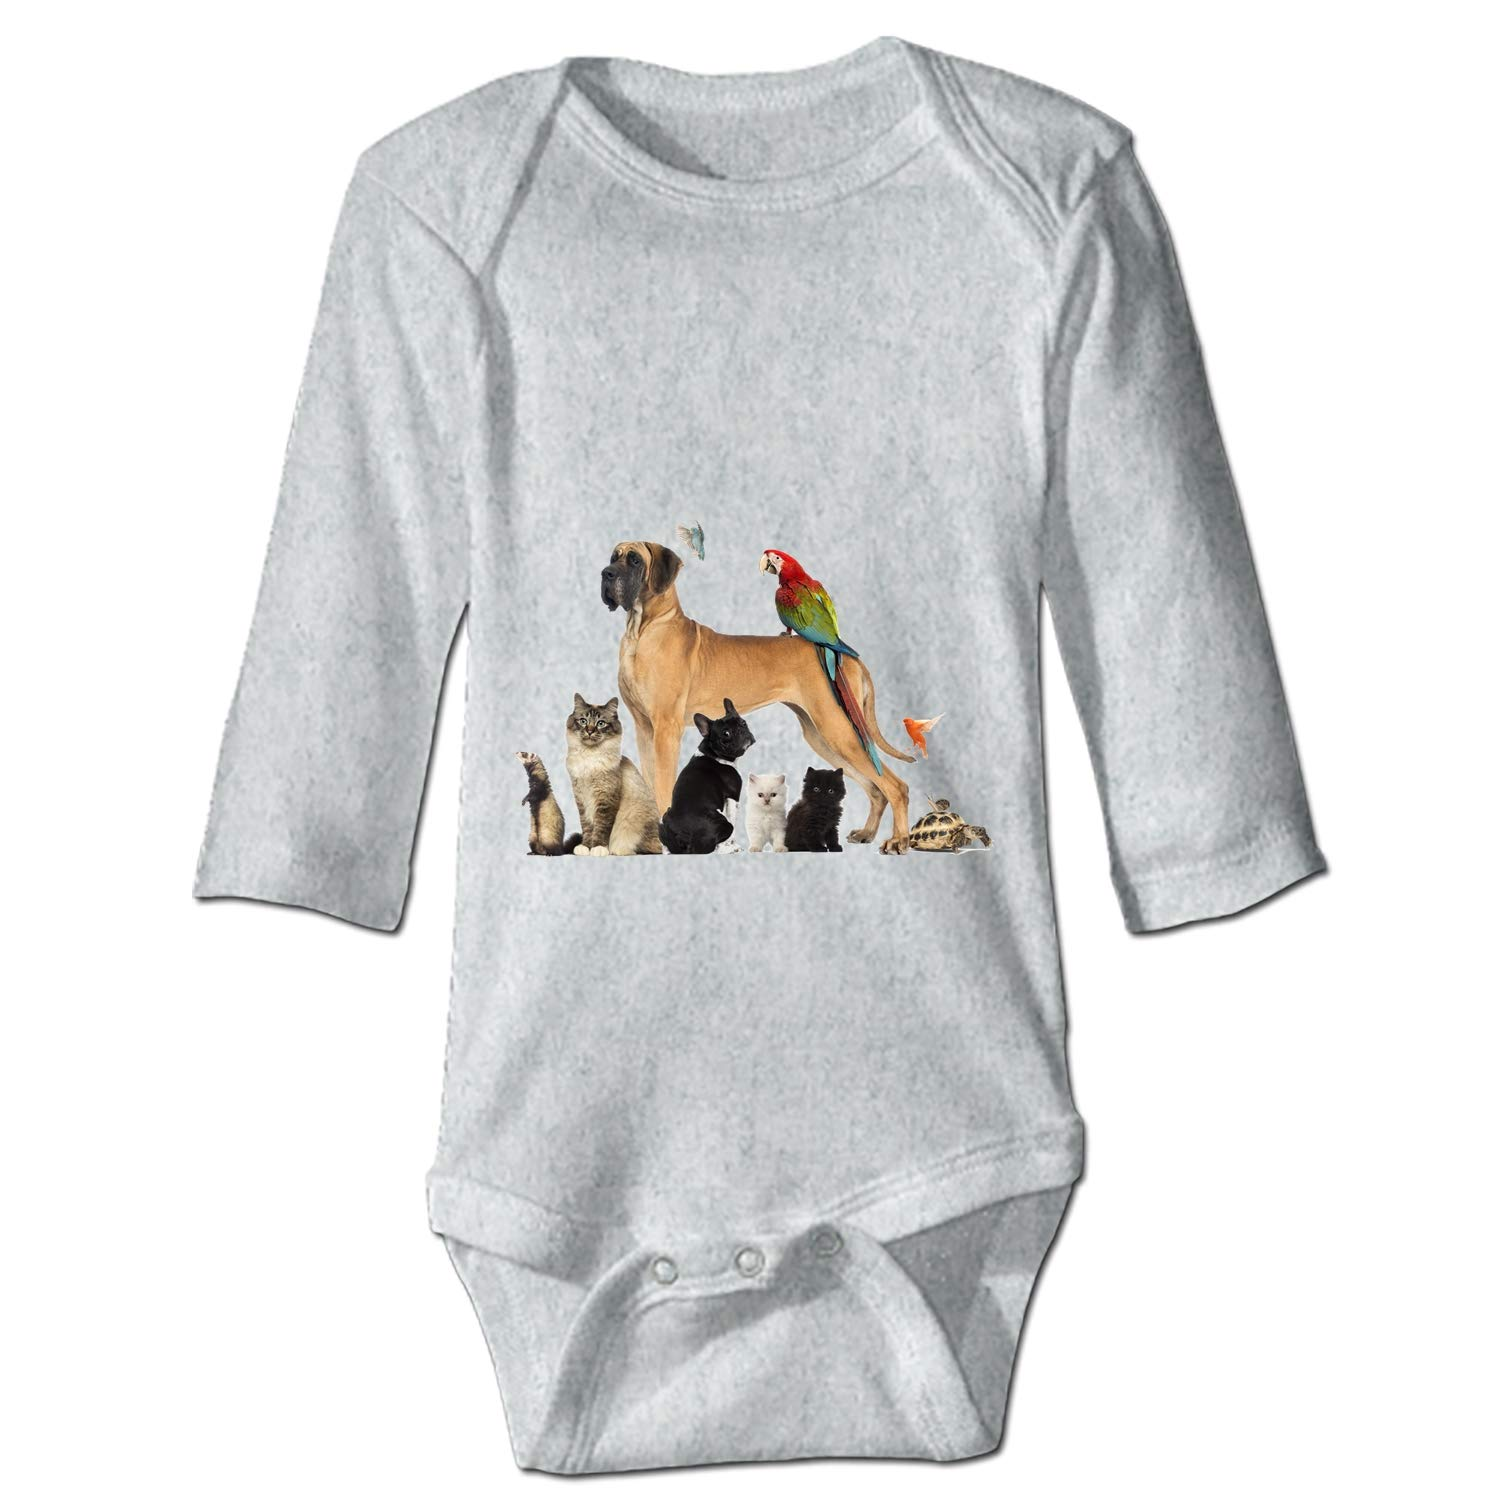 KuLuKo Newborn Baby Boys Girls Romper Jumpsuit Cotton Funny Pug